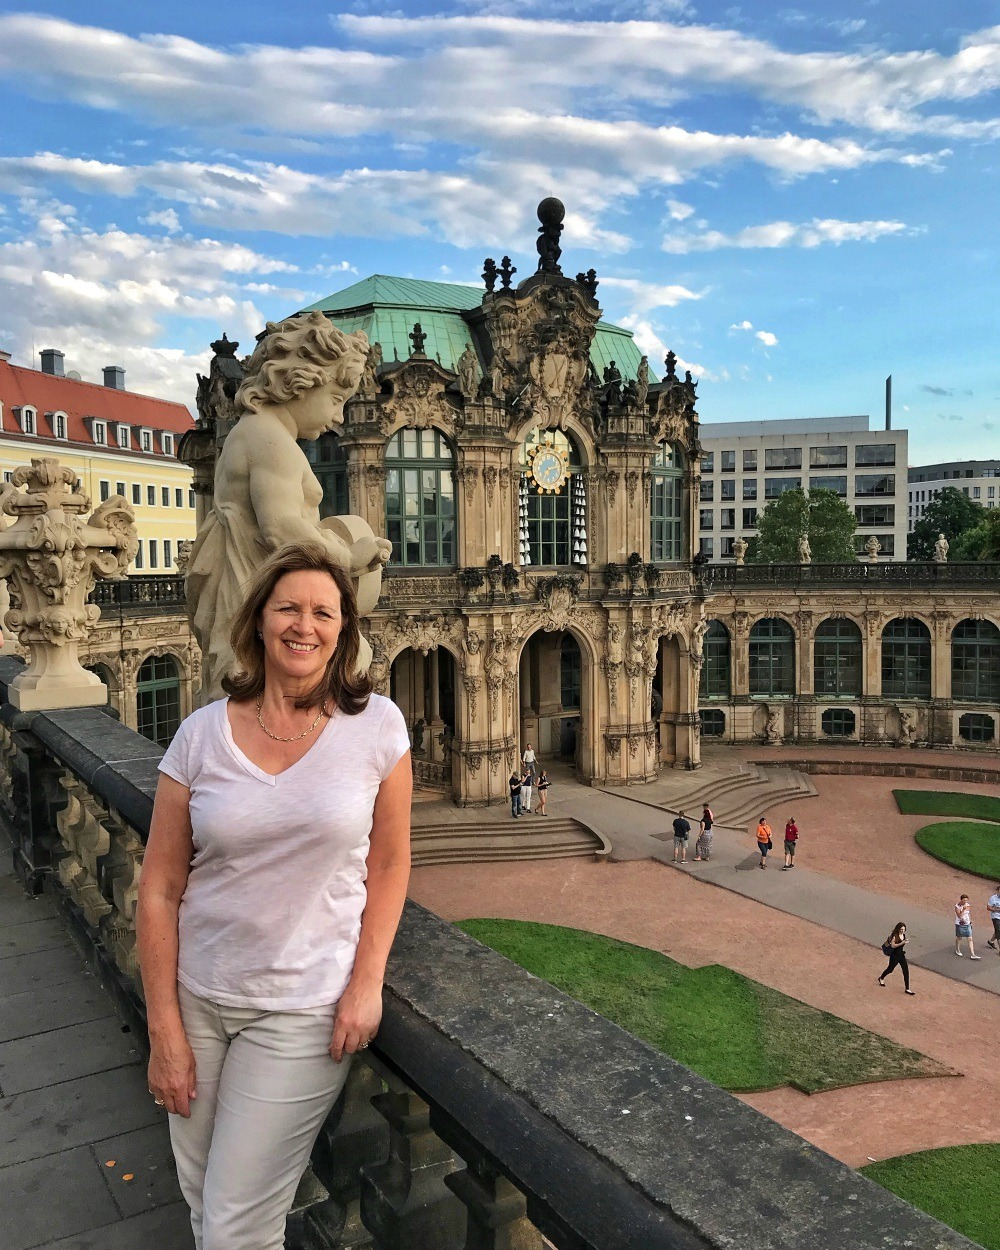 Zwinger Palace in Dresden Germany Photo Heatheronhertravels.com